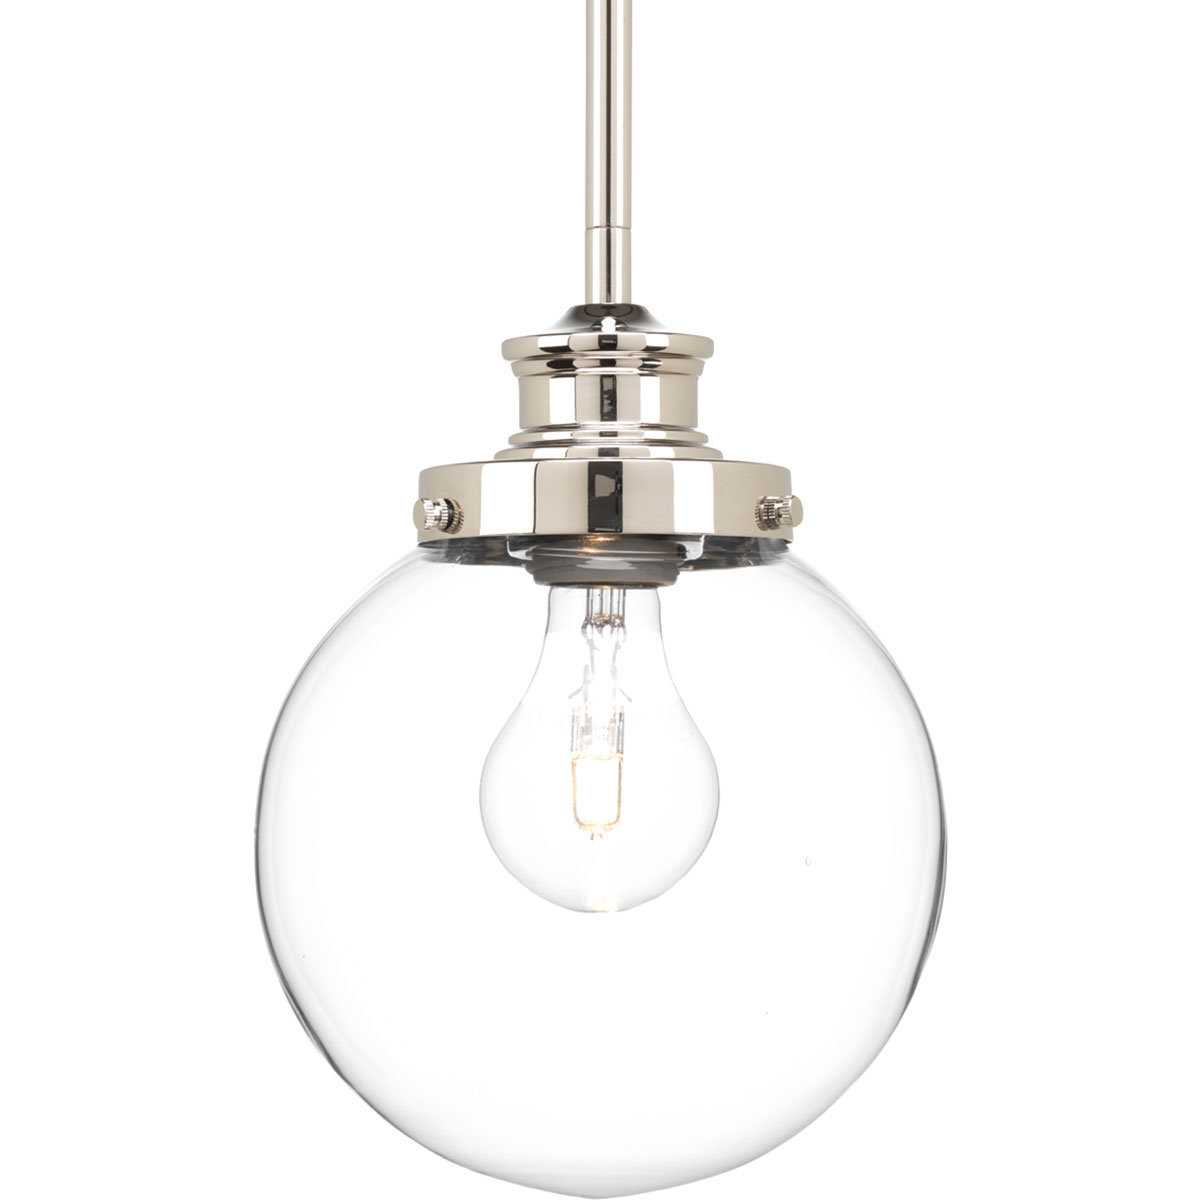 Popular Photo of Cayden 1 Light Single Globe Pendants